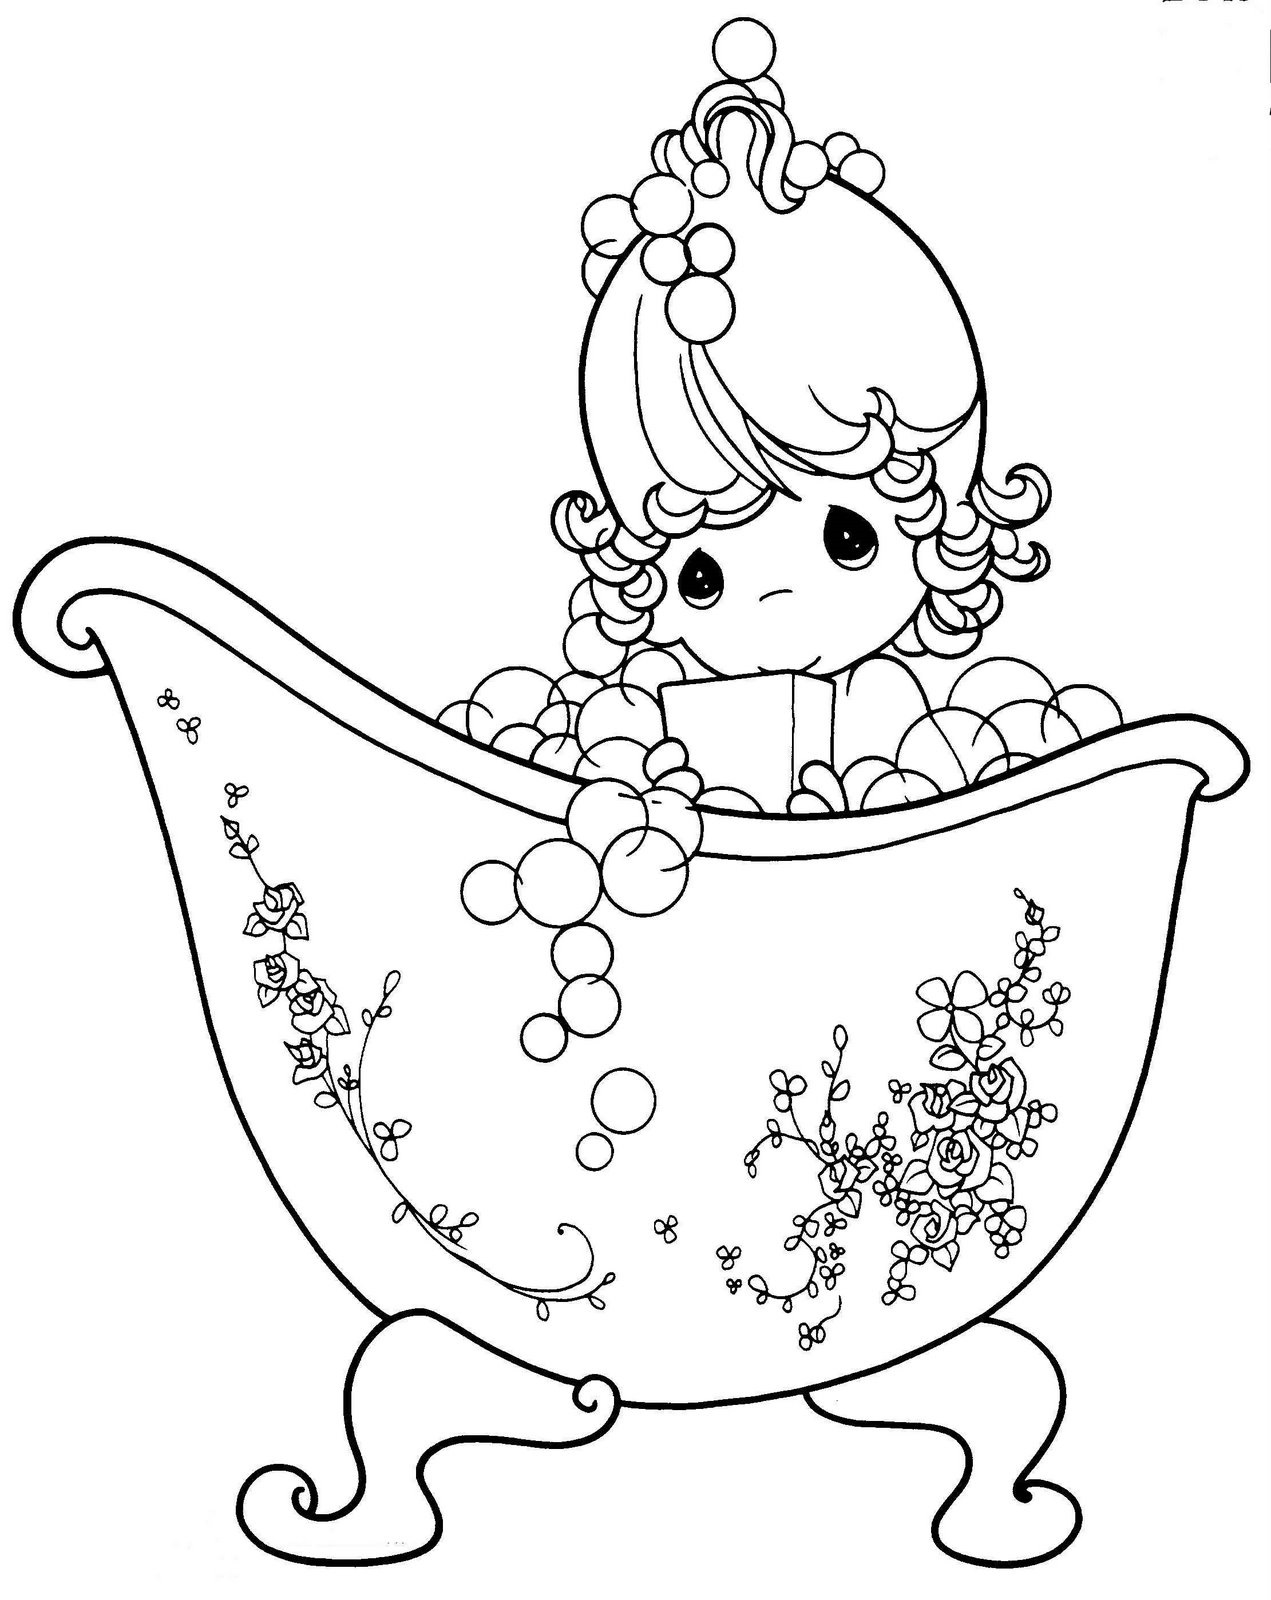 Cute precious moments coloring pages to print learning for Coloring pages precious moments print